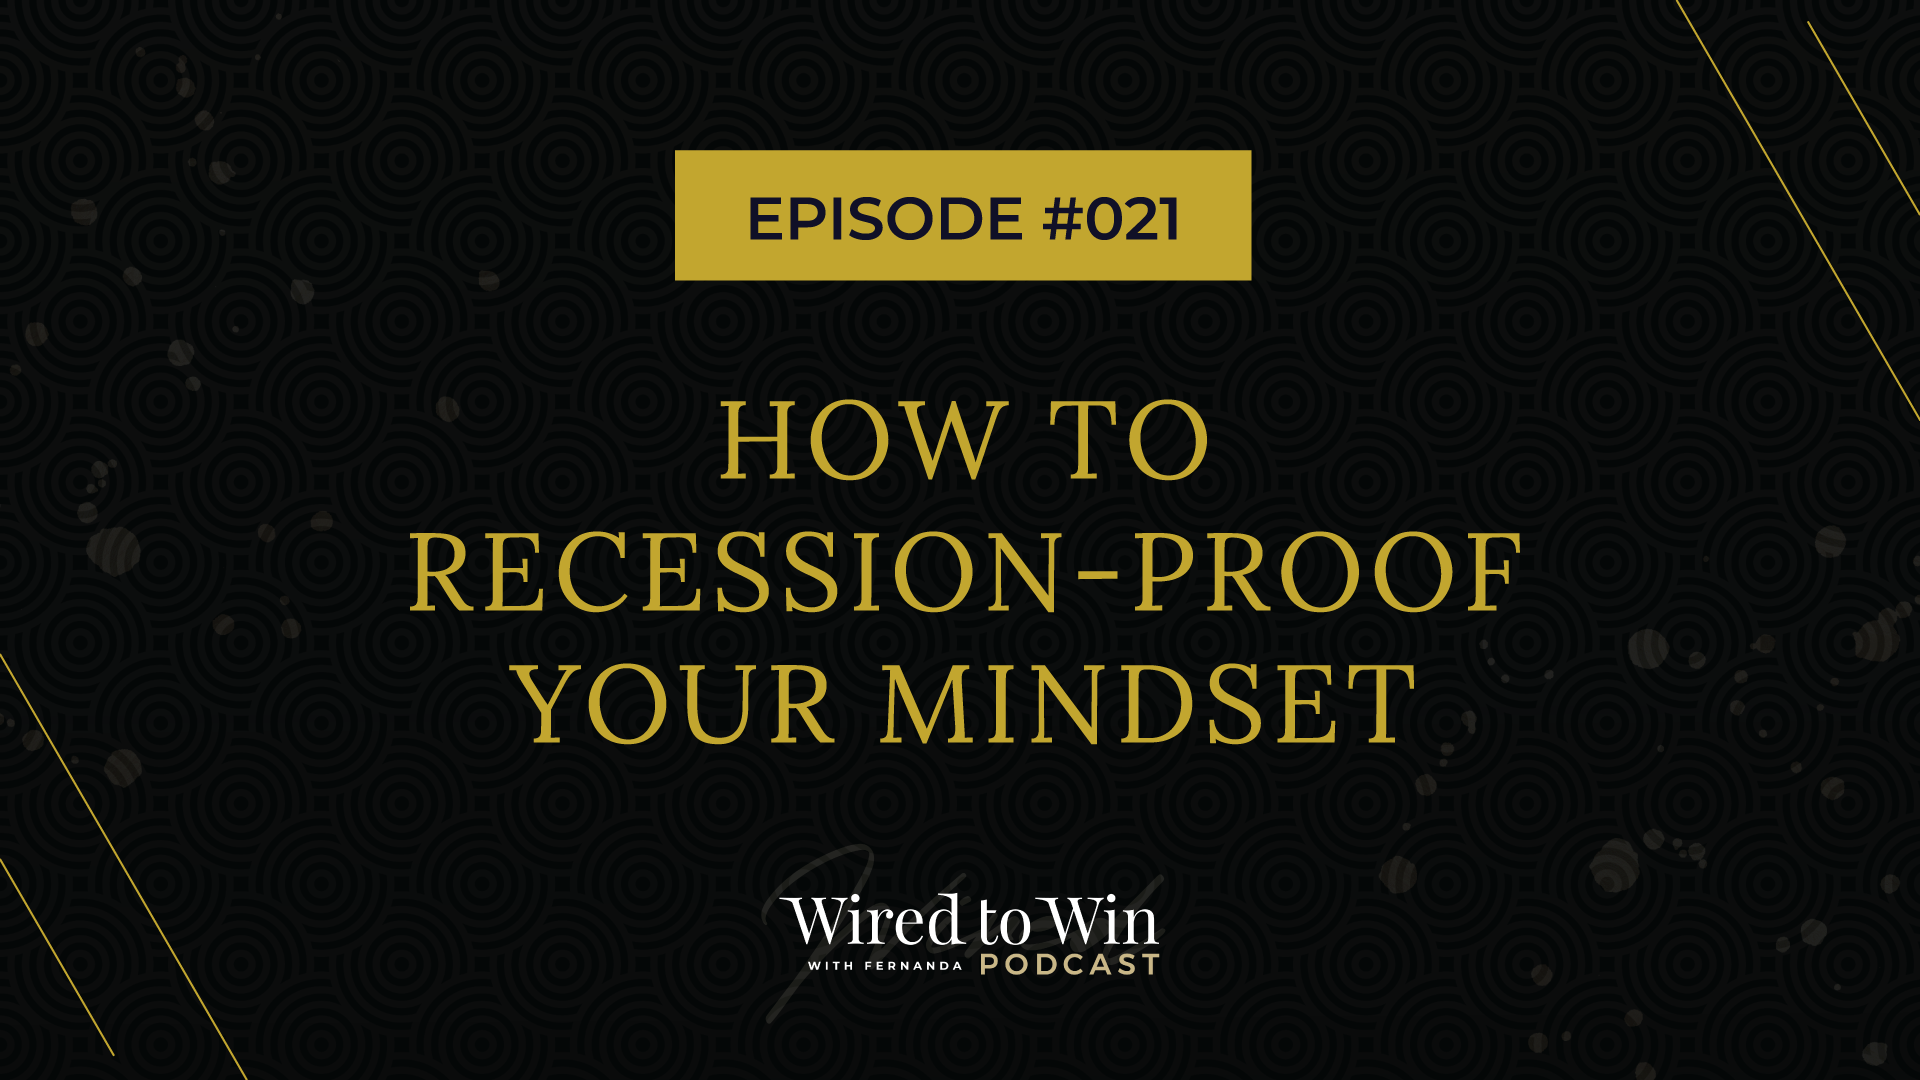 Recession-proof your mindset